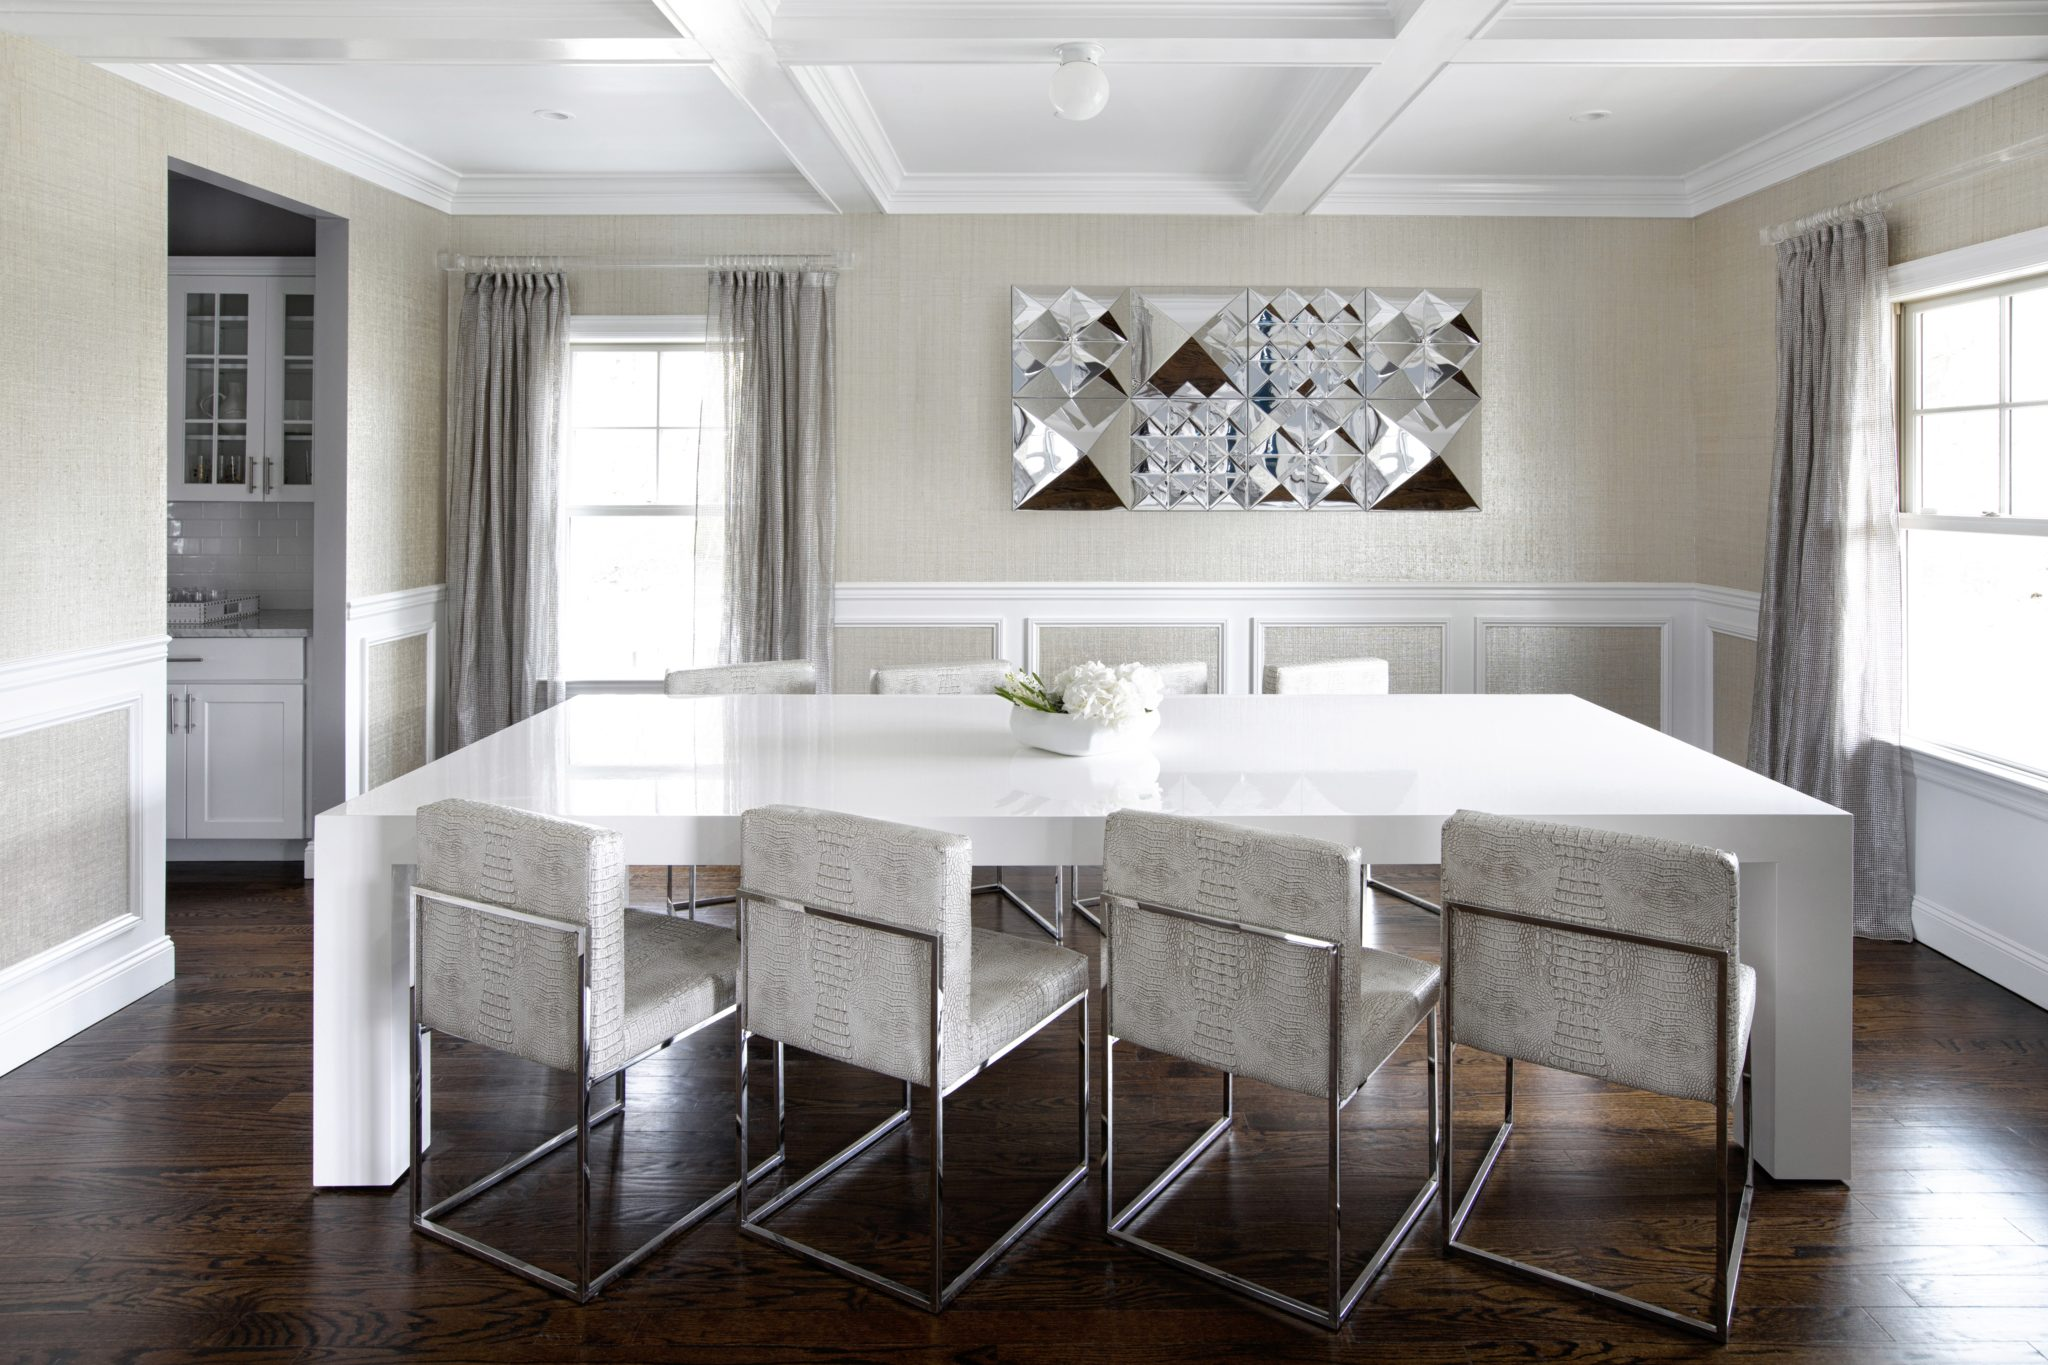 Dining room featuring crocodile vinyl chairs. by Laura Michaels Design